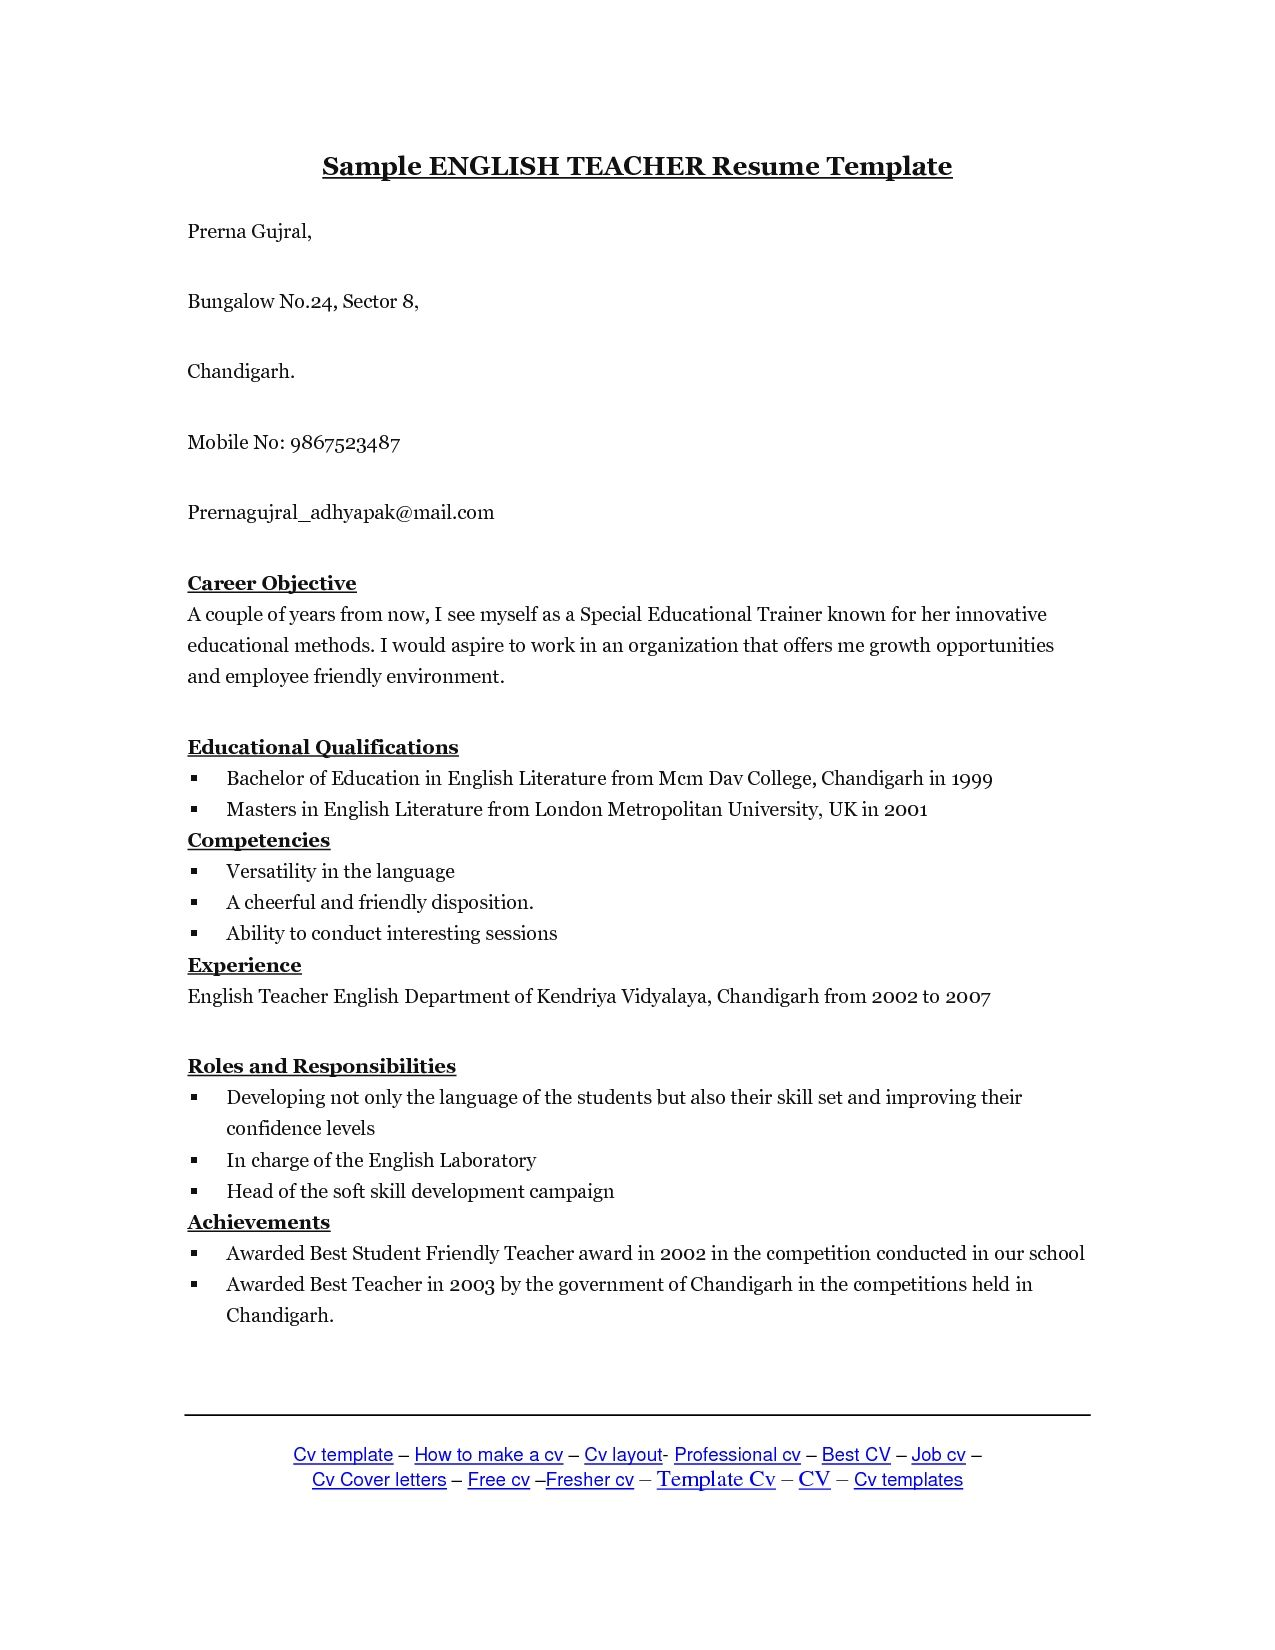 Resume Template Google Docs Resume Google Docs Template Cover Letter Free Templates For  Home